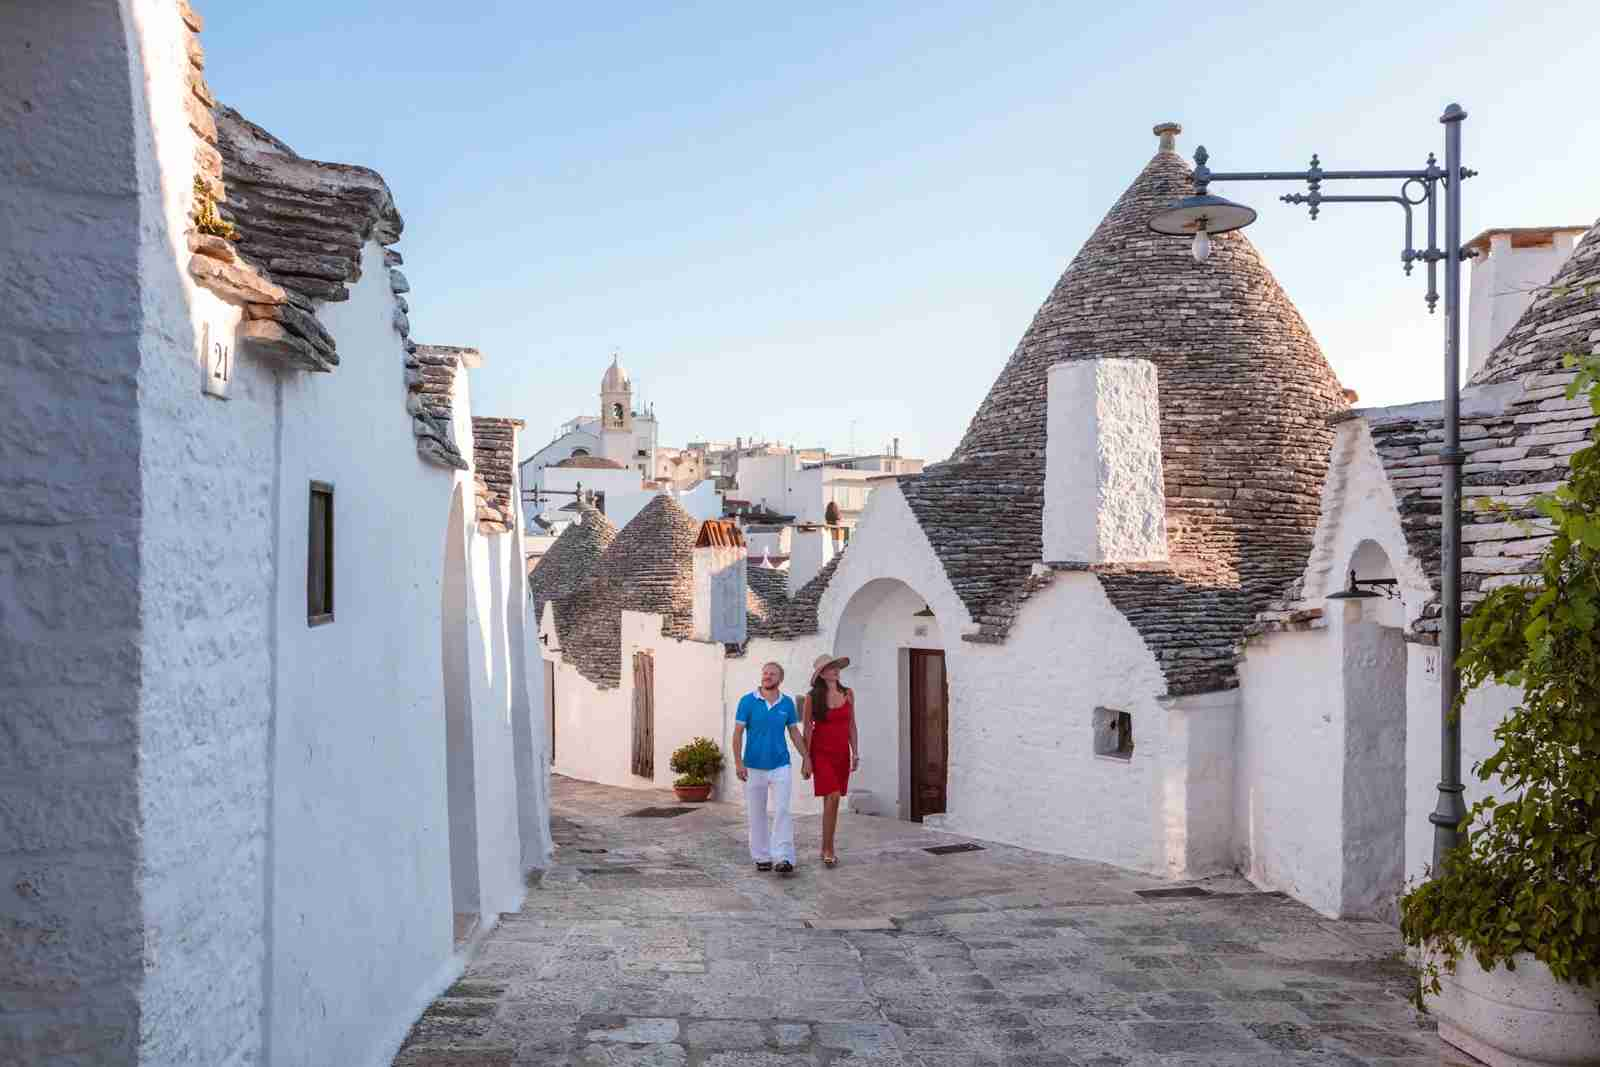 Alberobello, Italy. (Photo by Matteo Colombo/Getty Images)